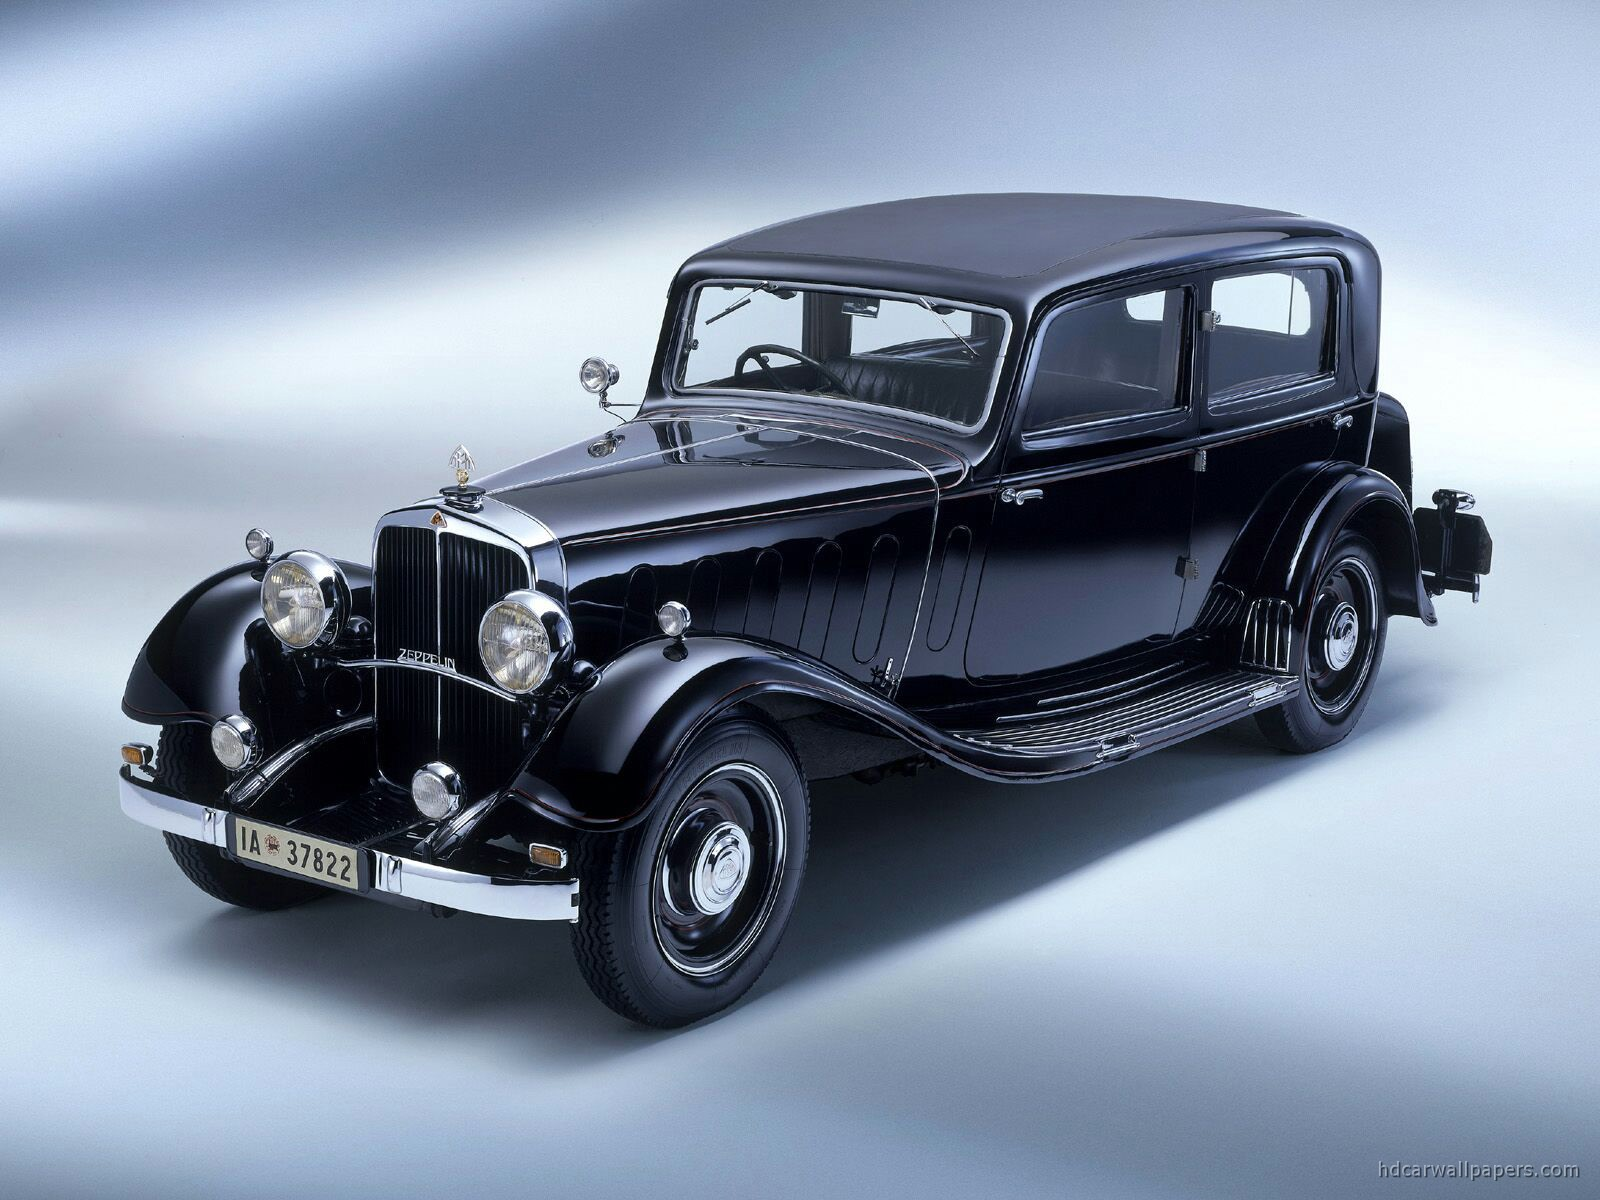 Best Classic Cars of the 50s